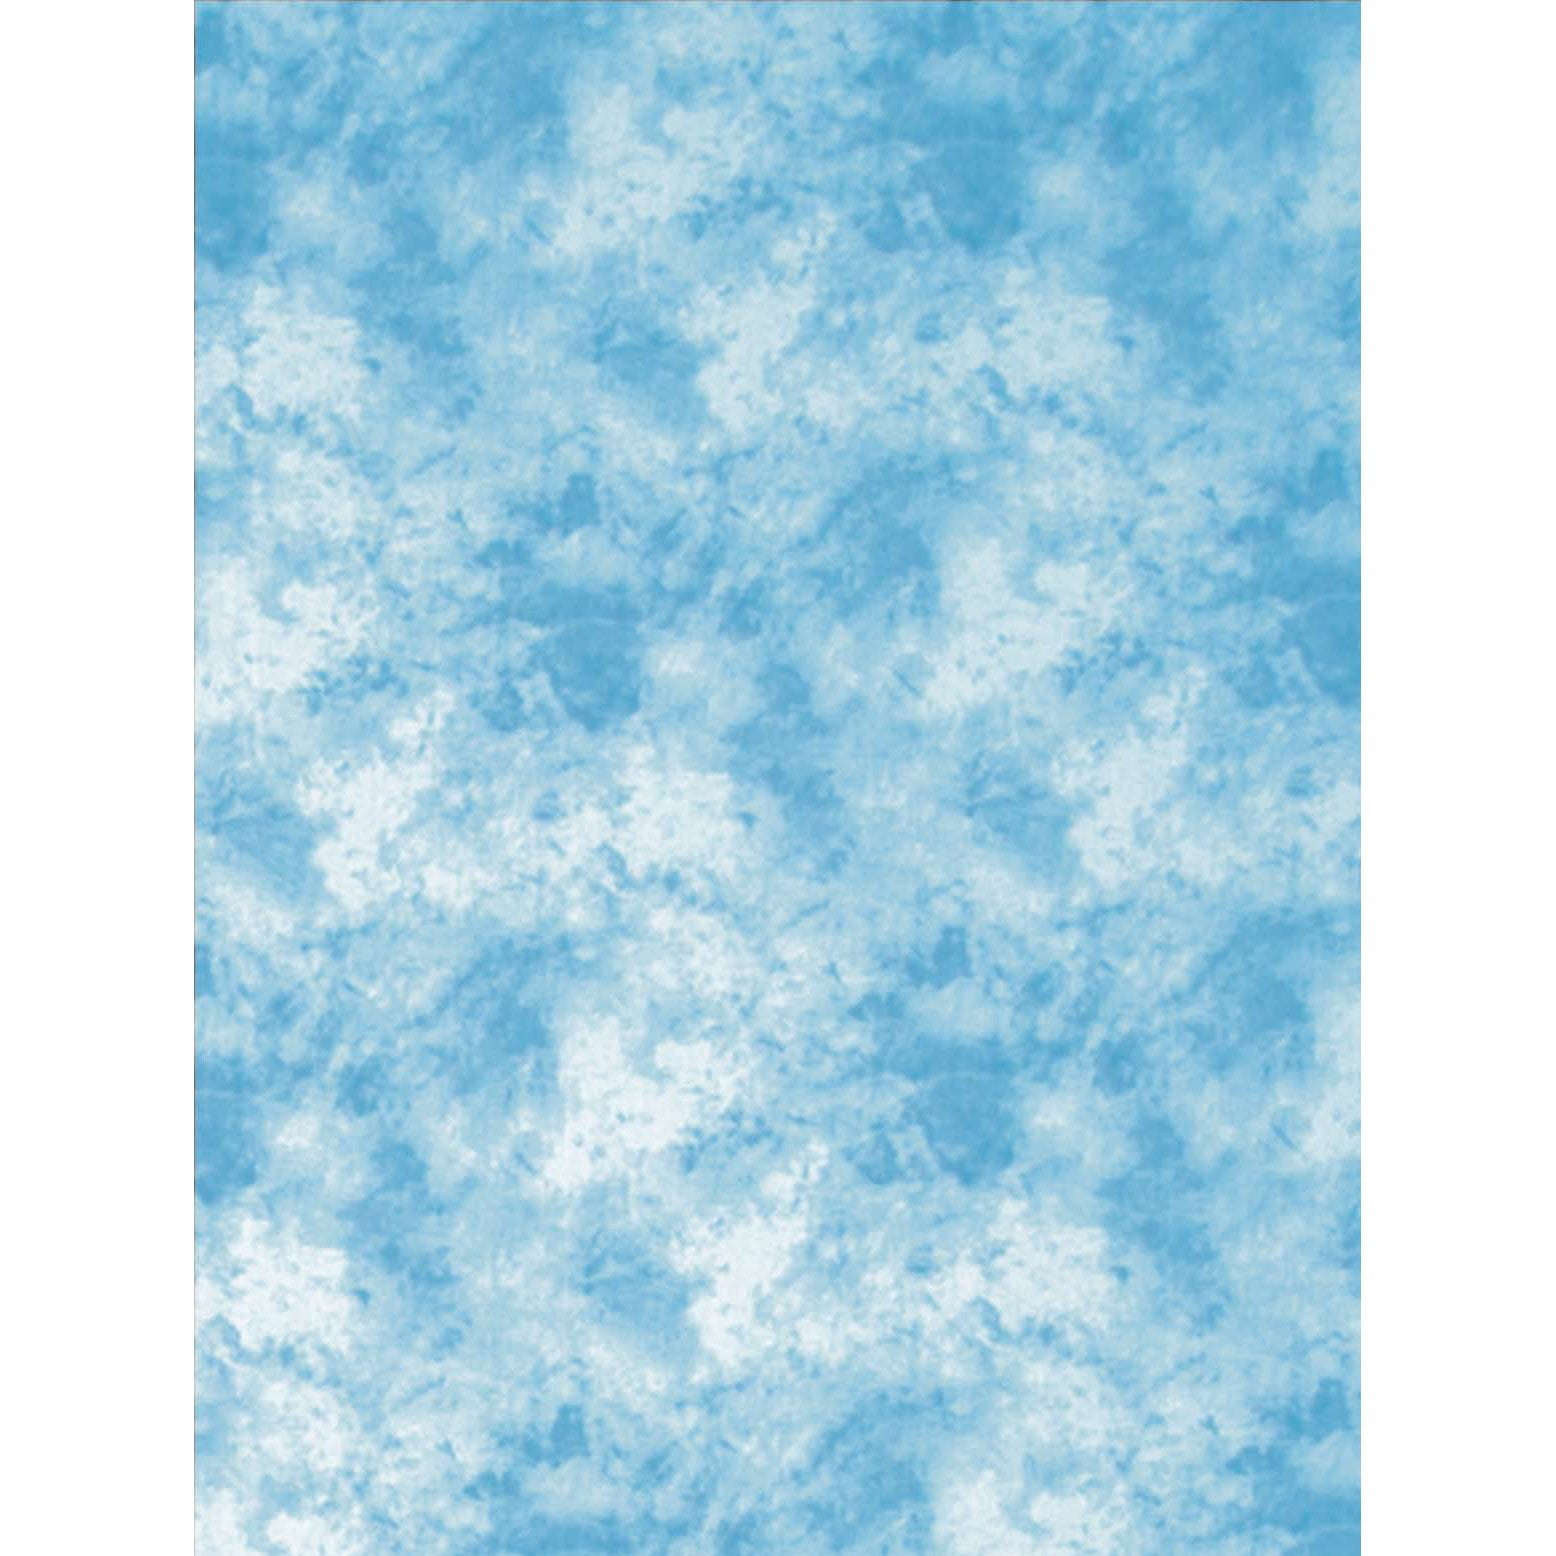 ProMaster Cloud Dyed Backdrop - 6'x10' - Light Blue